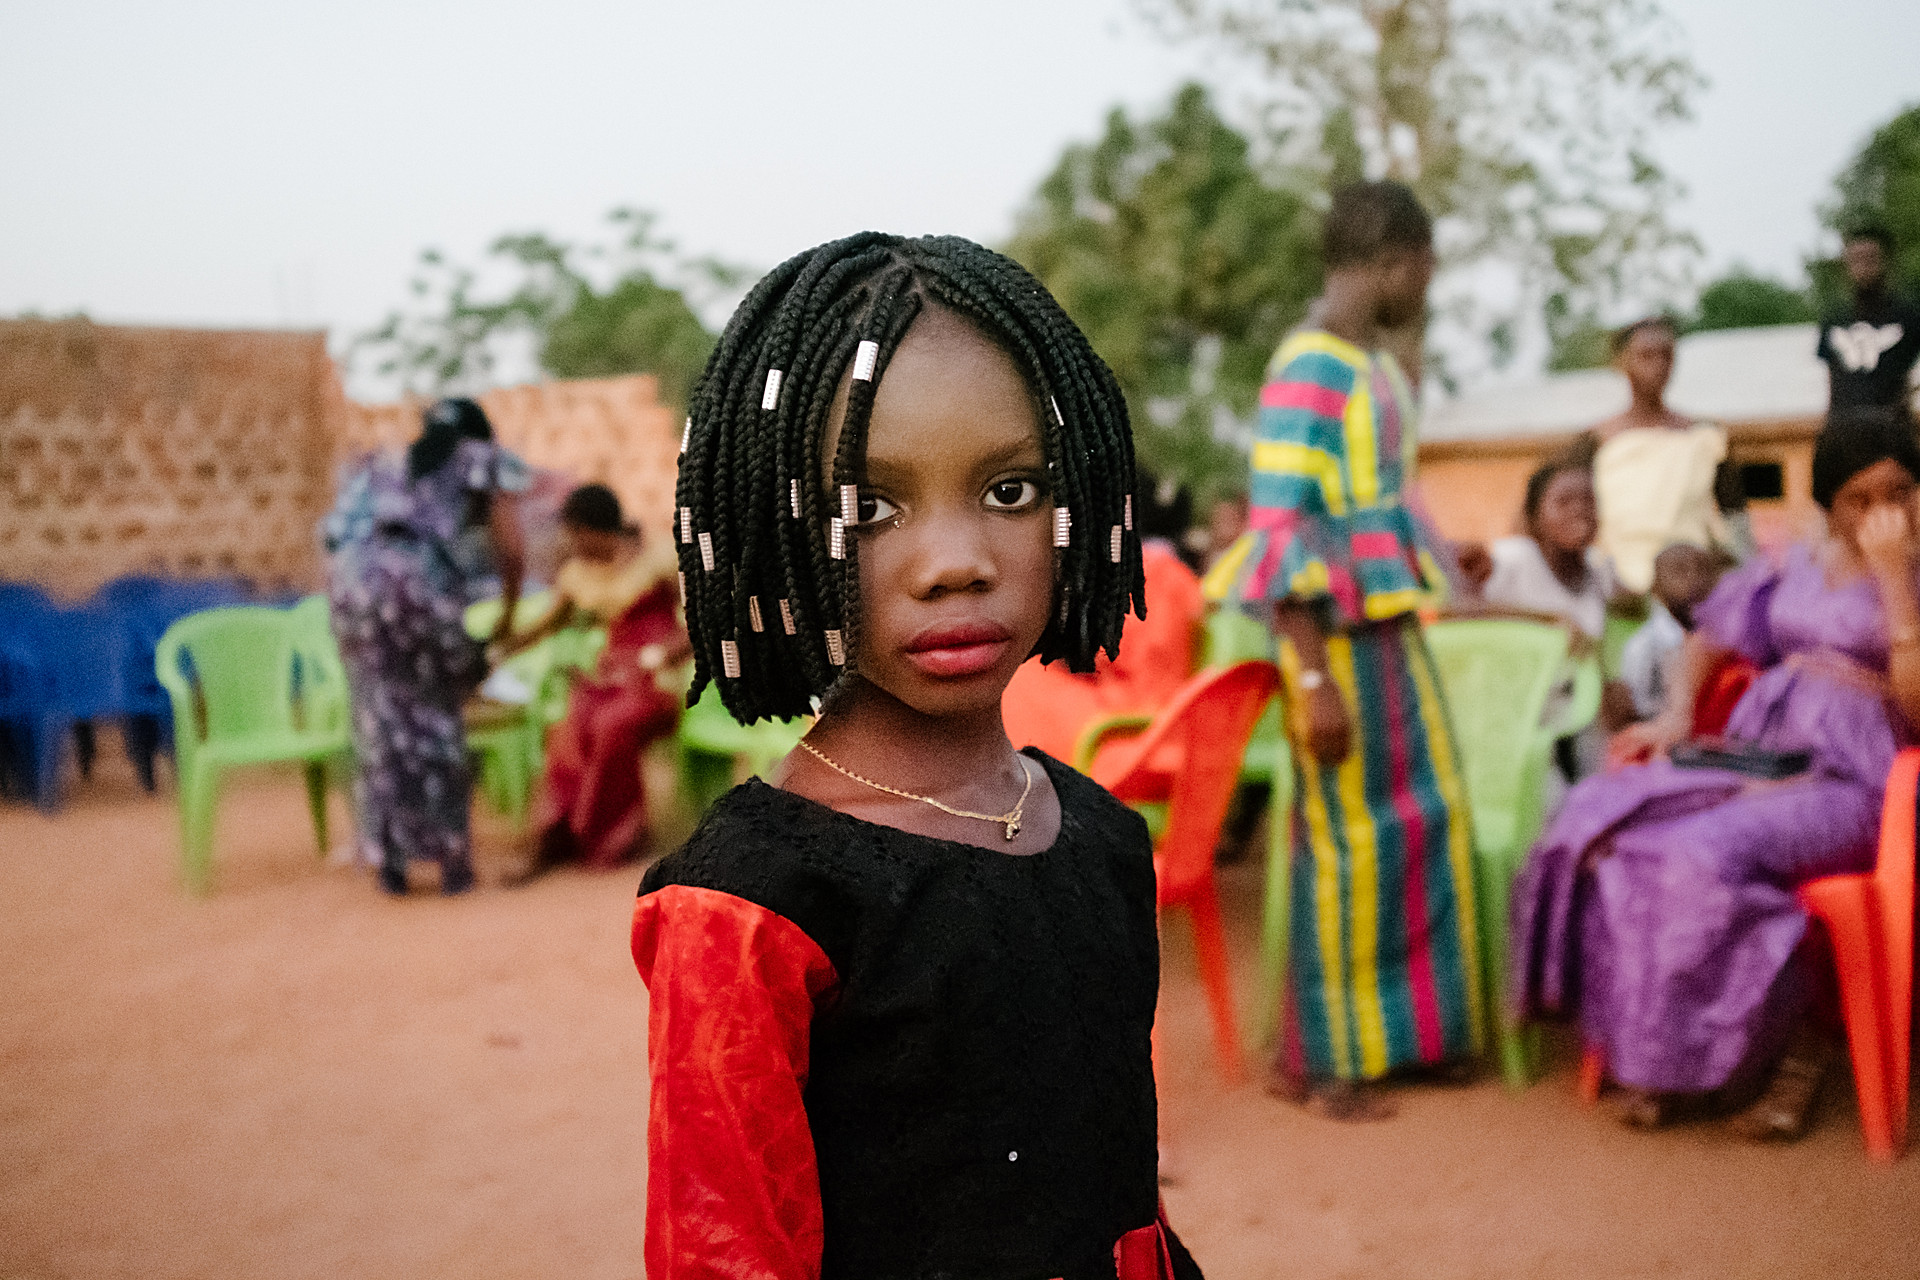 One of the celebrated girls poses for a photo during a circumcision party in Kindia, Guinea. About a month after the circumcision a big party is organized for the girls who have been circumcised. The girls are dressed up in young ladies' dresses. They all get the same haircut.  *** This gallery has only one image. Please close X.